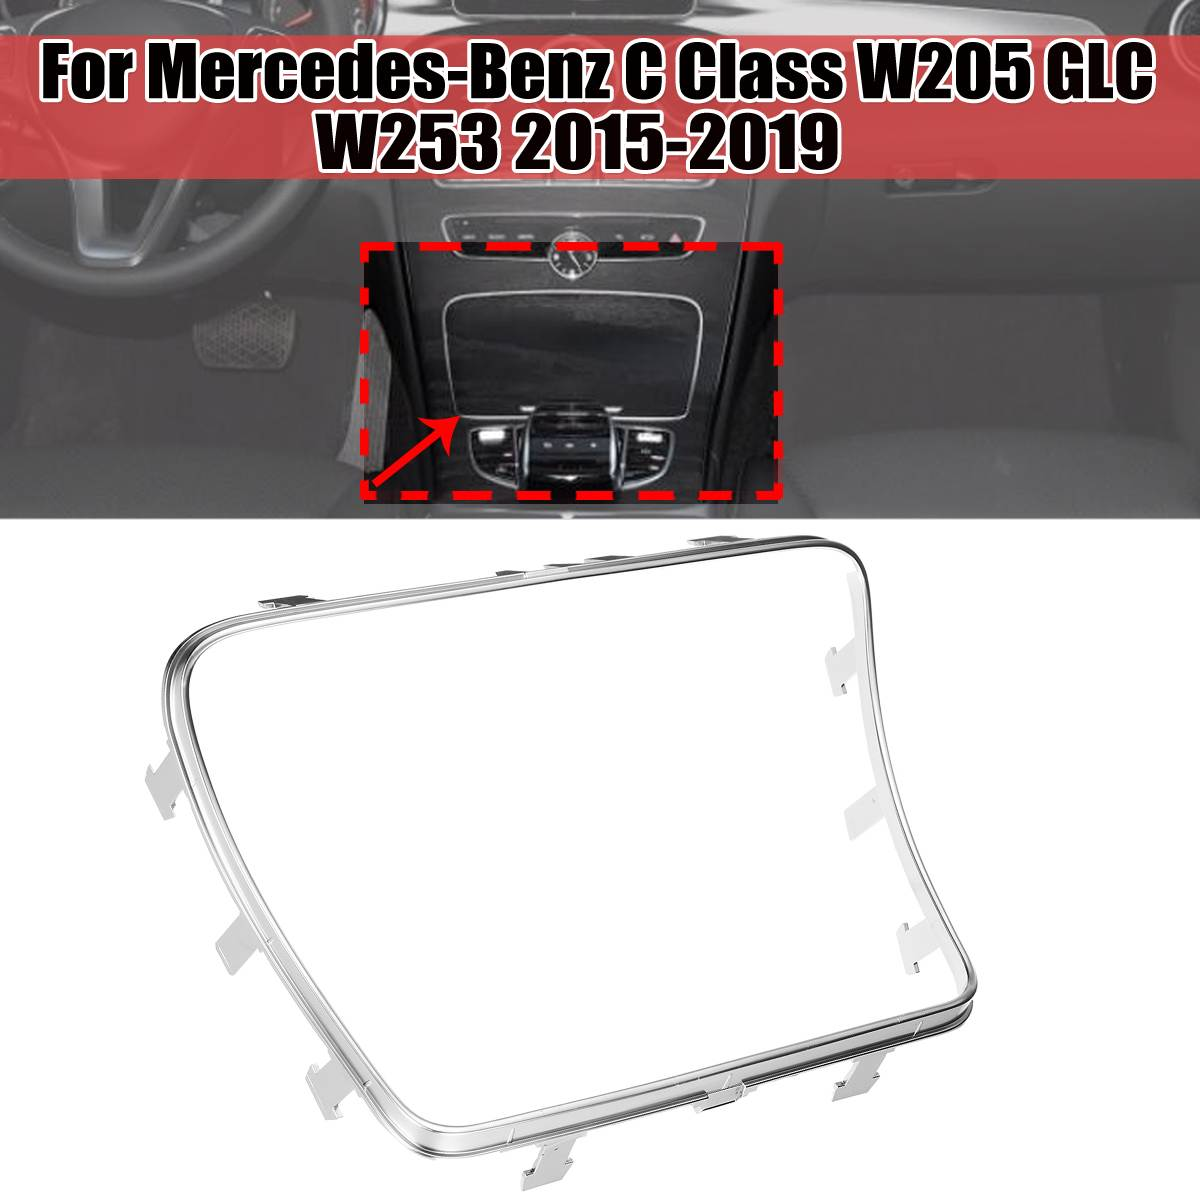 Silver <font><b>W205</b></font> Car Water Cup Holder Strip Plating Ashtray Trim Ring For <font><b>Mercedes</b></font> For Benz C Class W253 <font><b>W205</b></font> GLC200 2015-2019 image